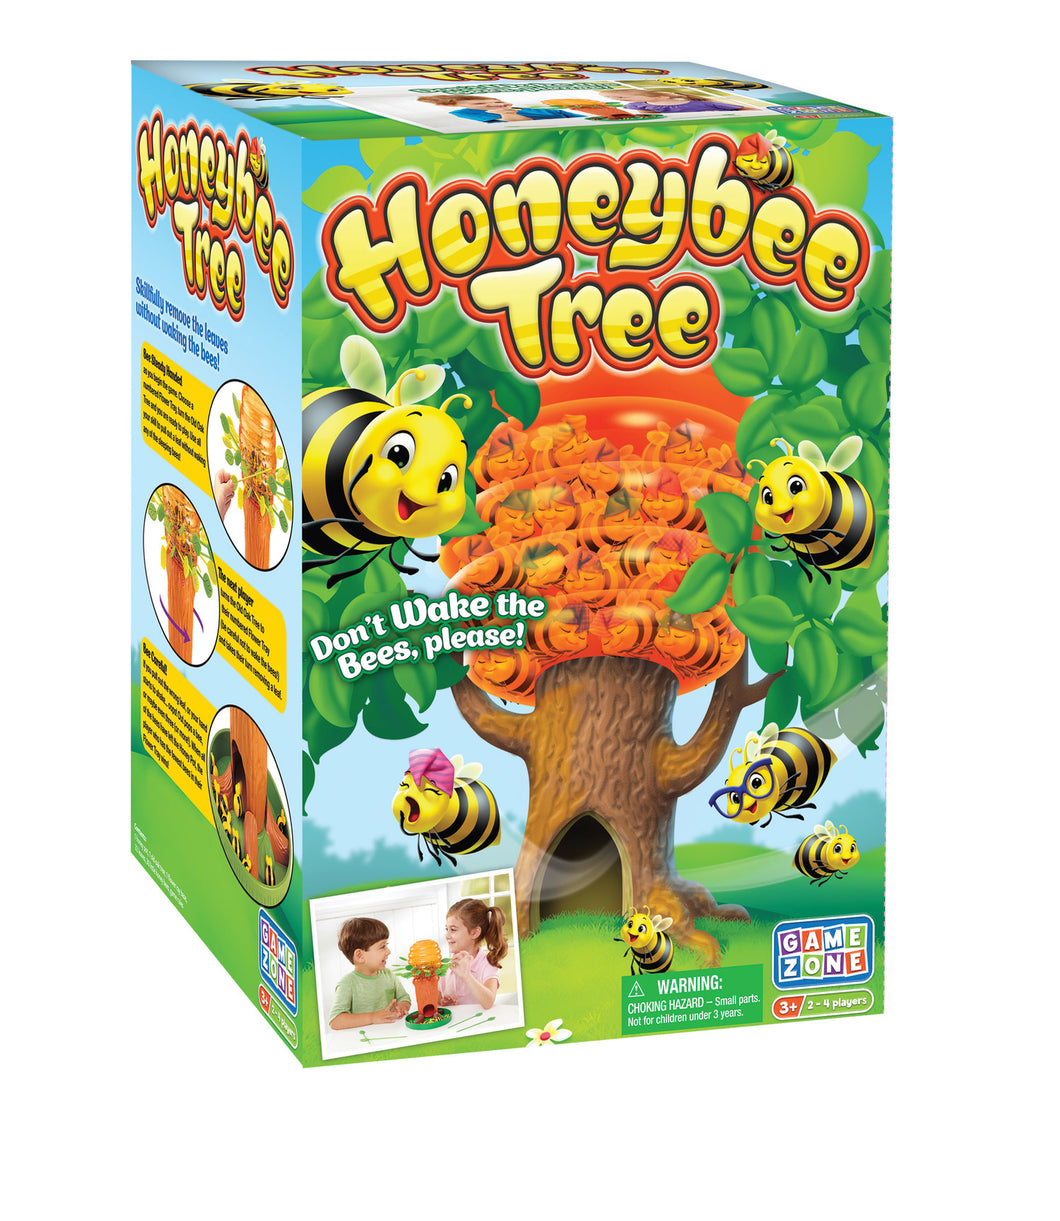 Honeybee Tree Game